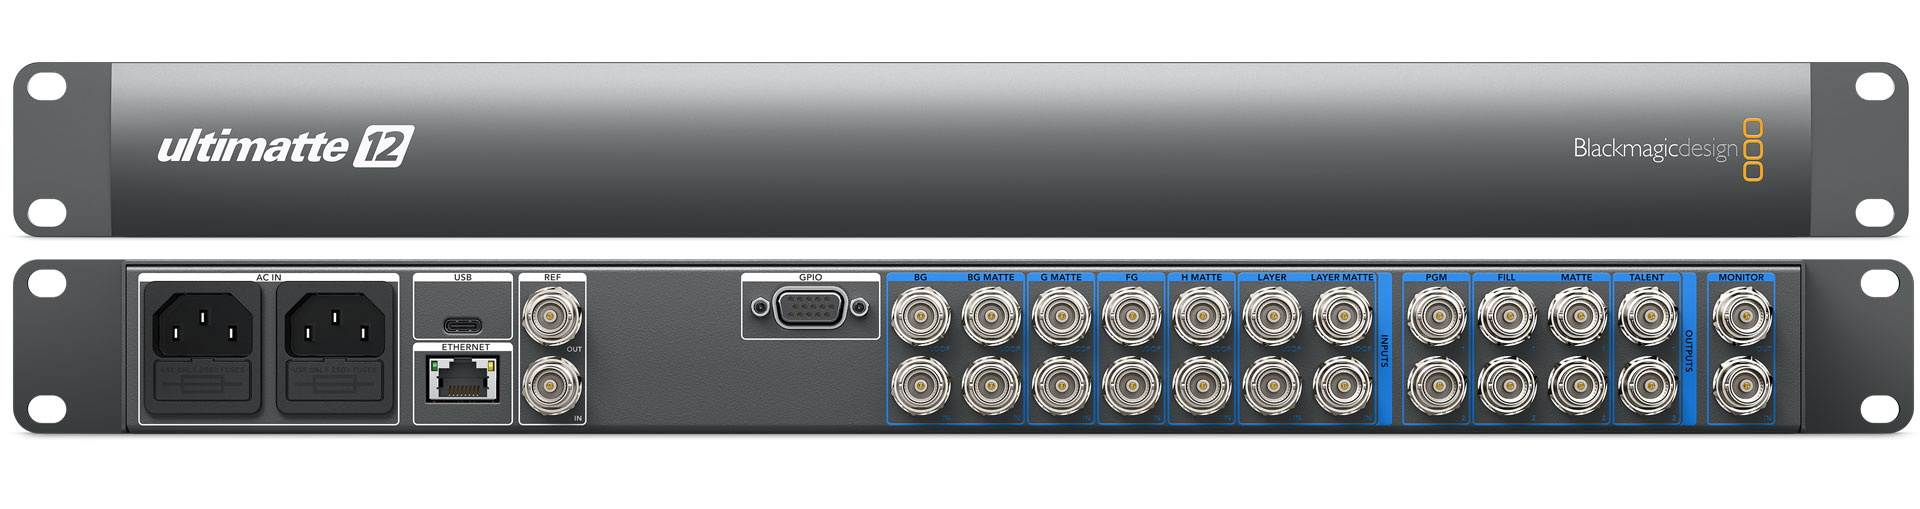 Blackmagic Design Ultimatte 12 front and rear view